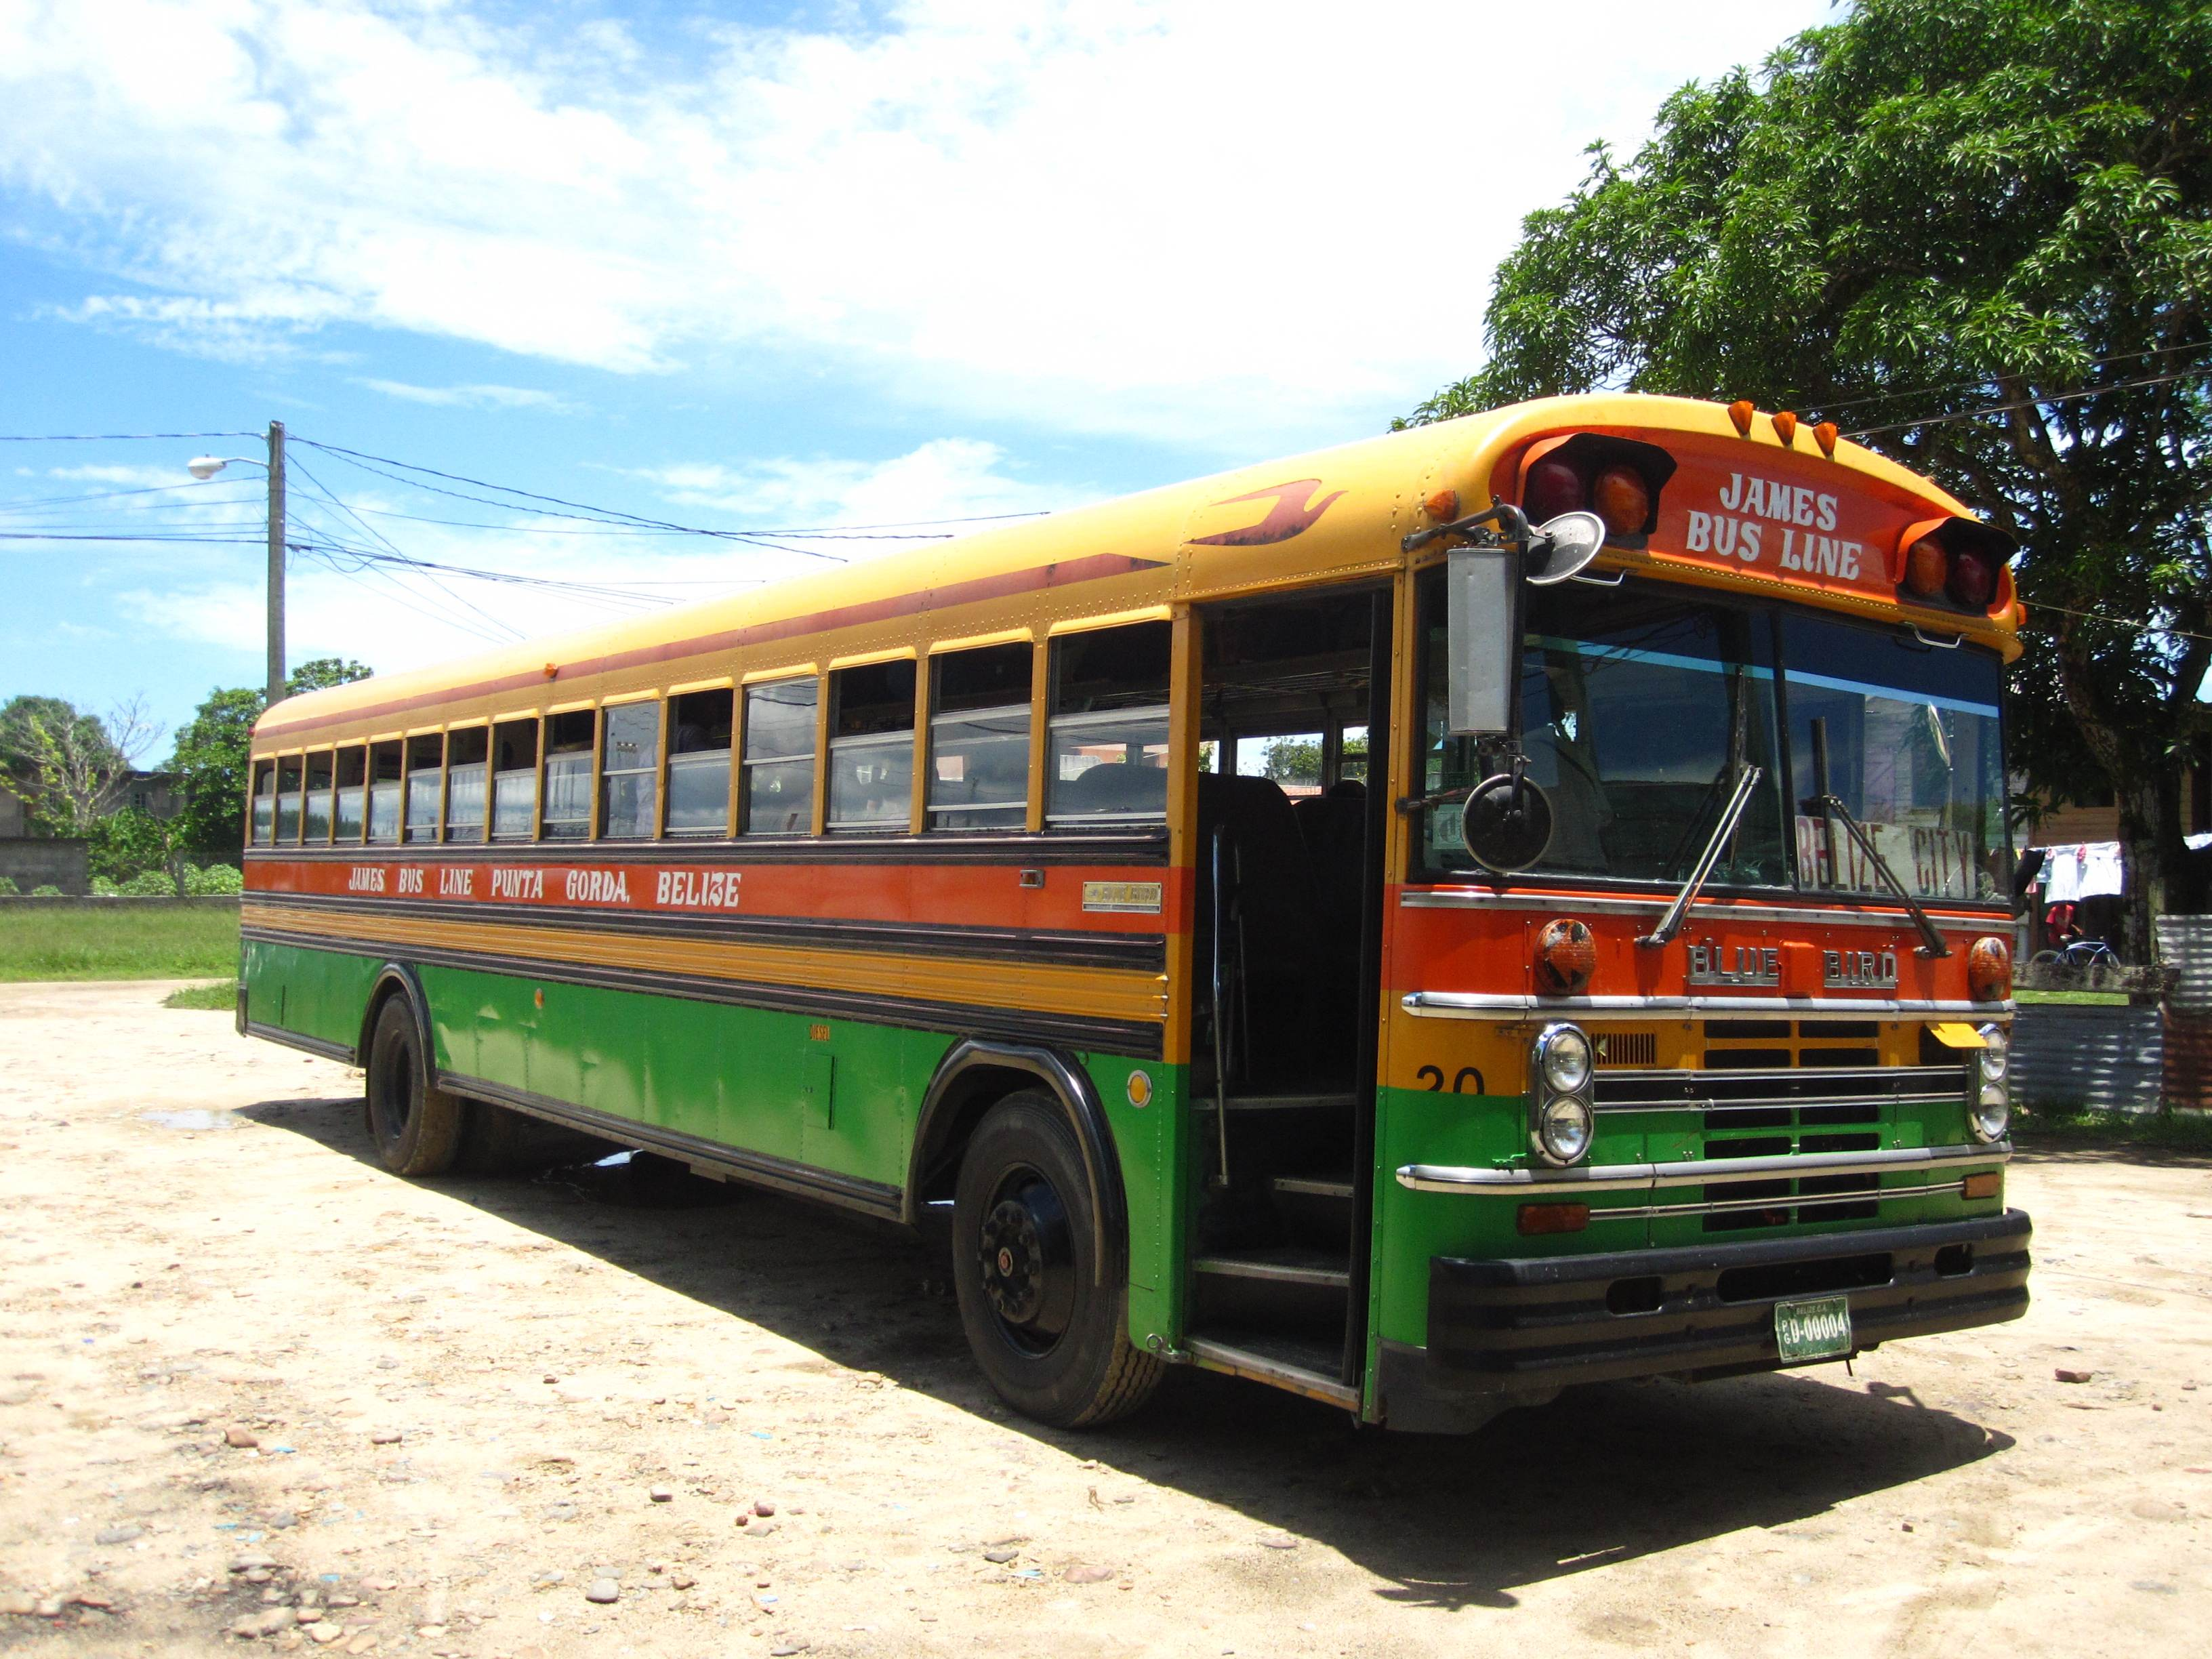 A Typical Bus in Belize